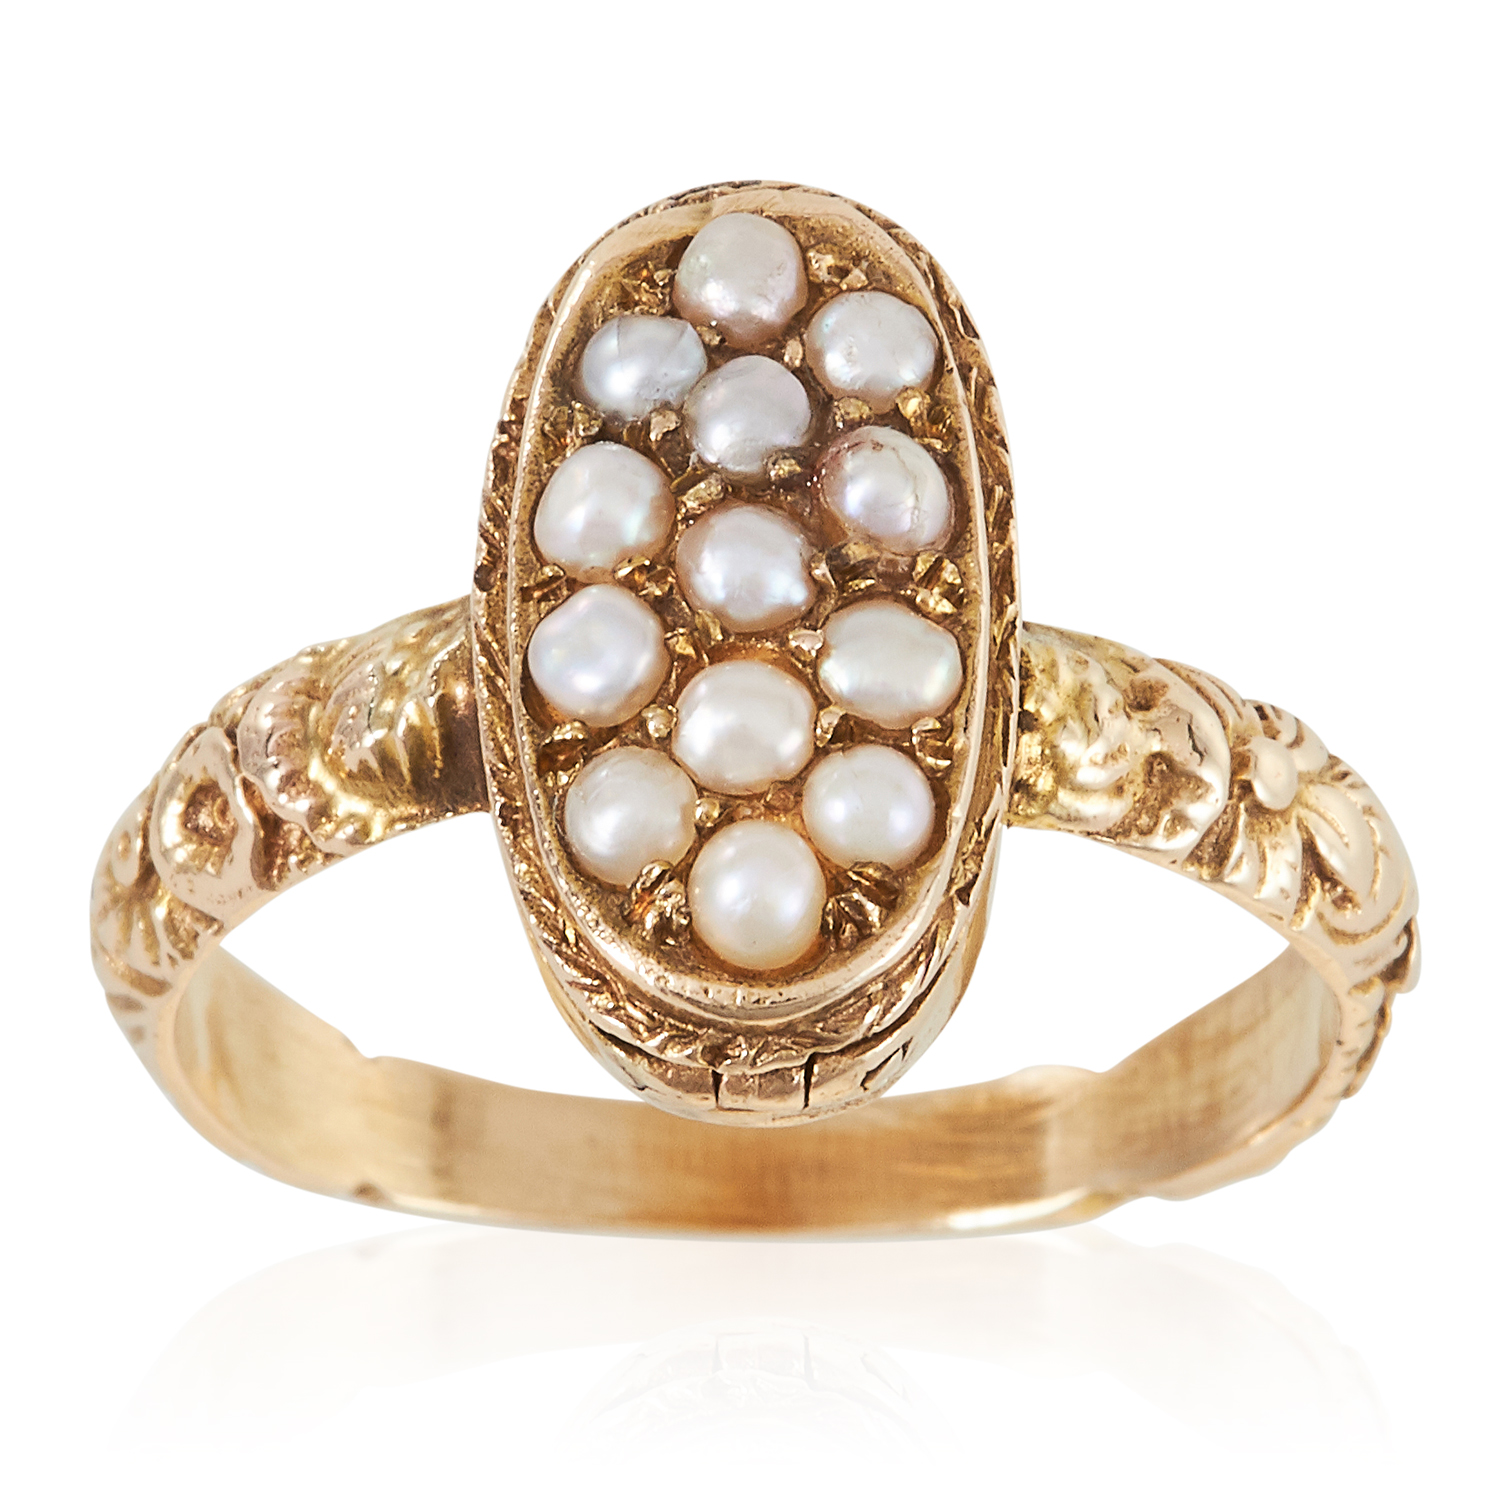 Los 3 - AN ANTIQUE PEARL POISON / LOCKET RING, 19TH CENTURY in high carat yellow gold, the oval face with